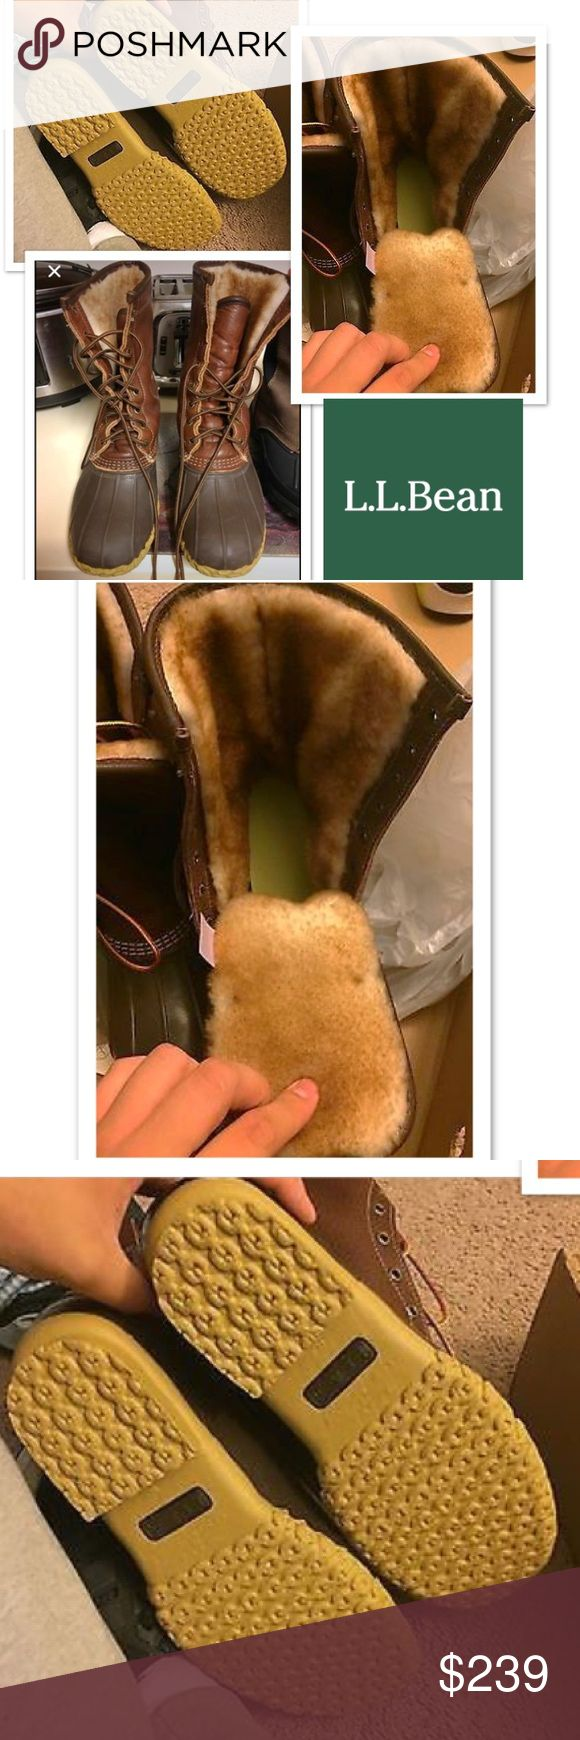 L.L. Bean Boots women's Size 9 shearling lined CHOCOLATE BROWN L.L. Bean boots women's size 9 duck boots lined with Shearling fur!! Super nice boots and warm! Authentic boughten at my local LL Bean factory store! Great boots for winter L.L. Bean Shoes